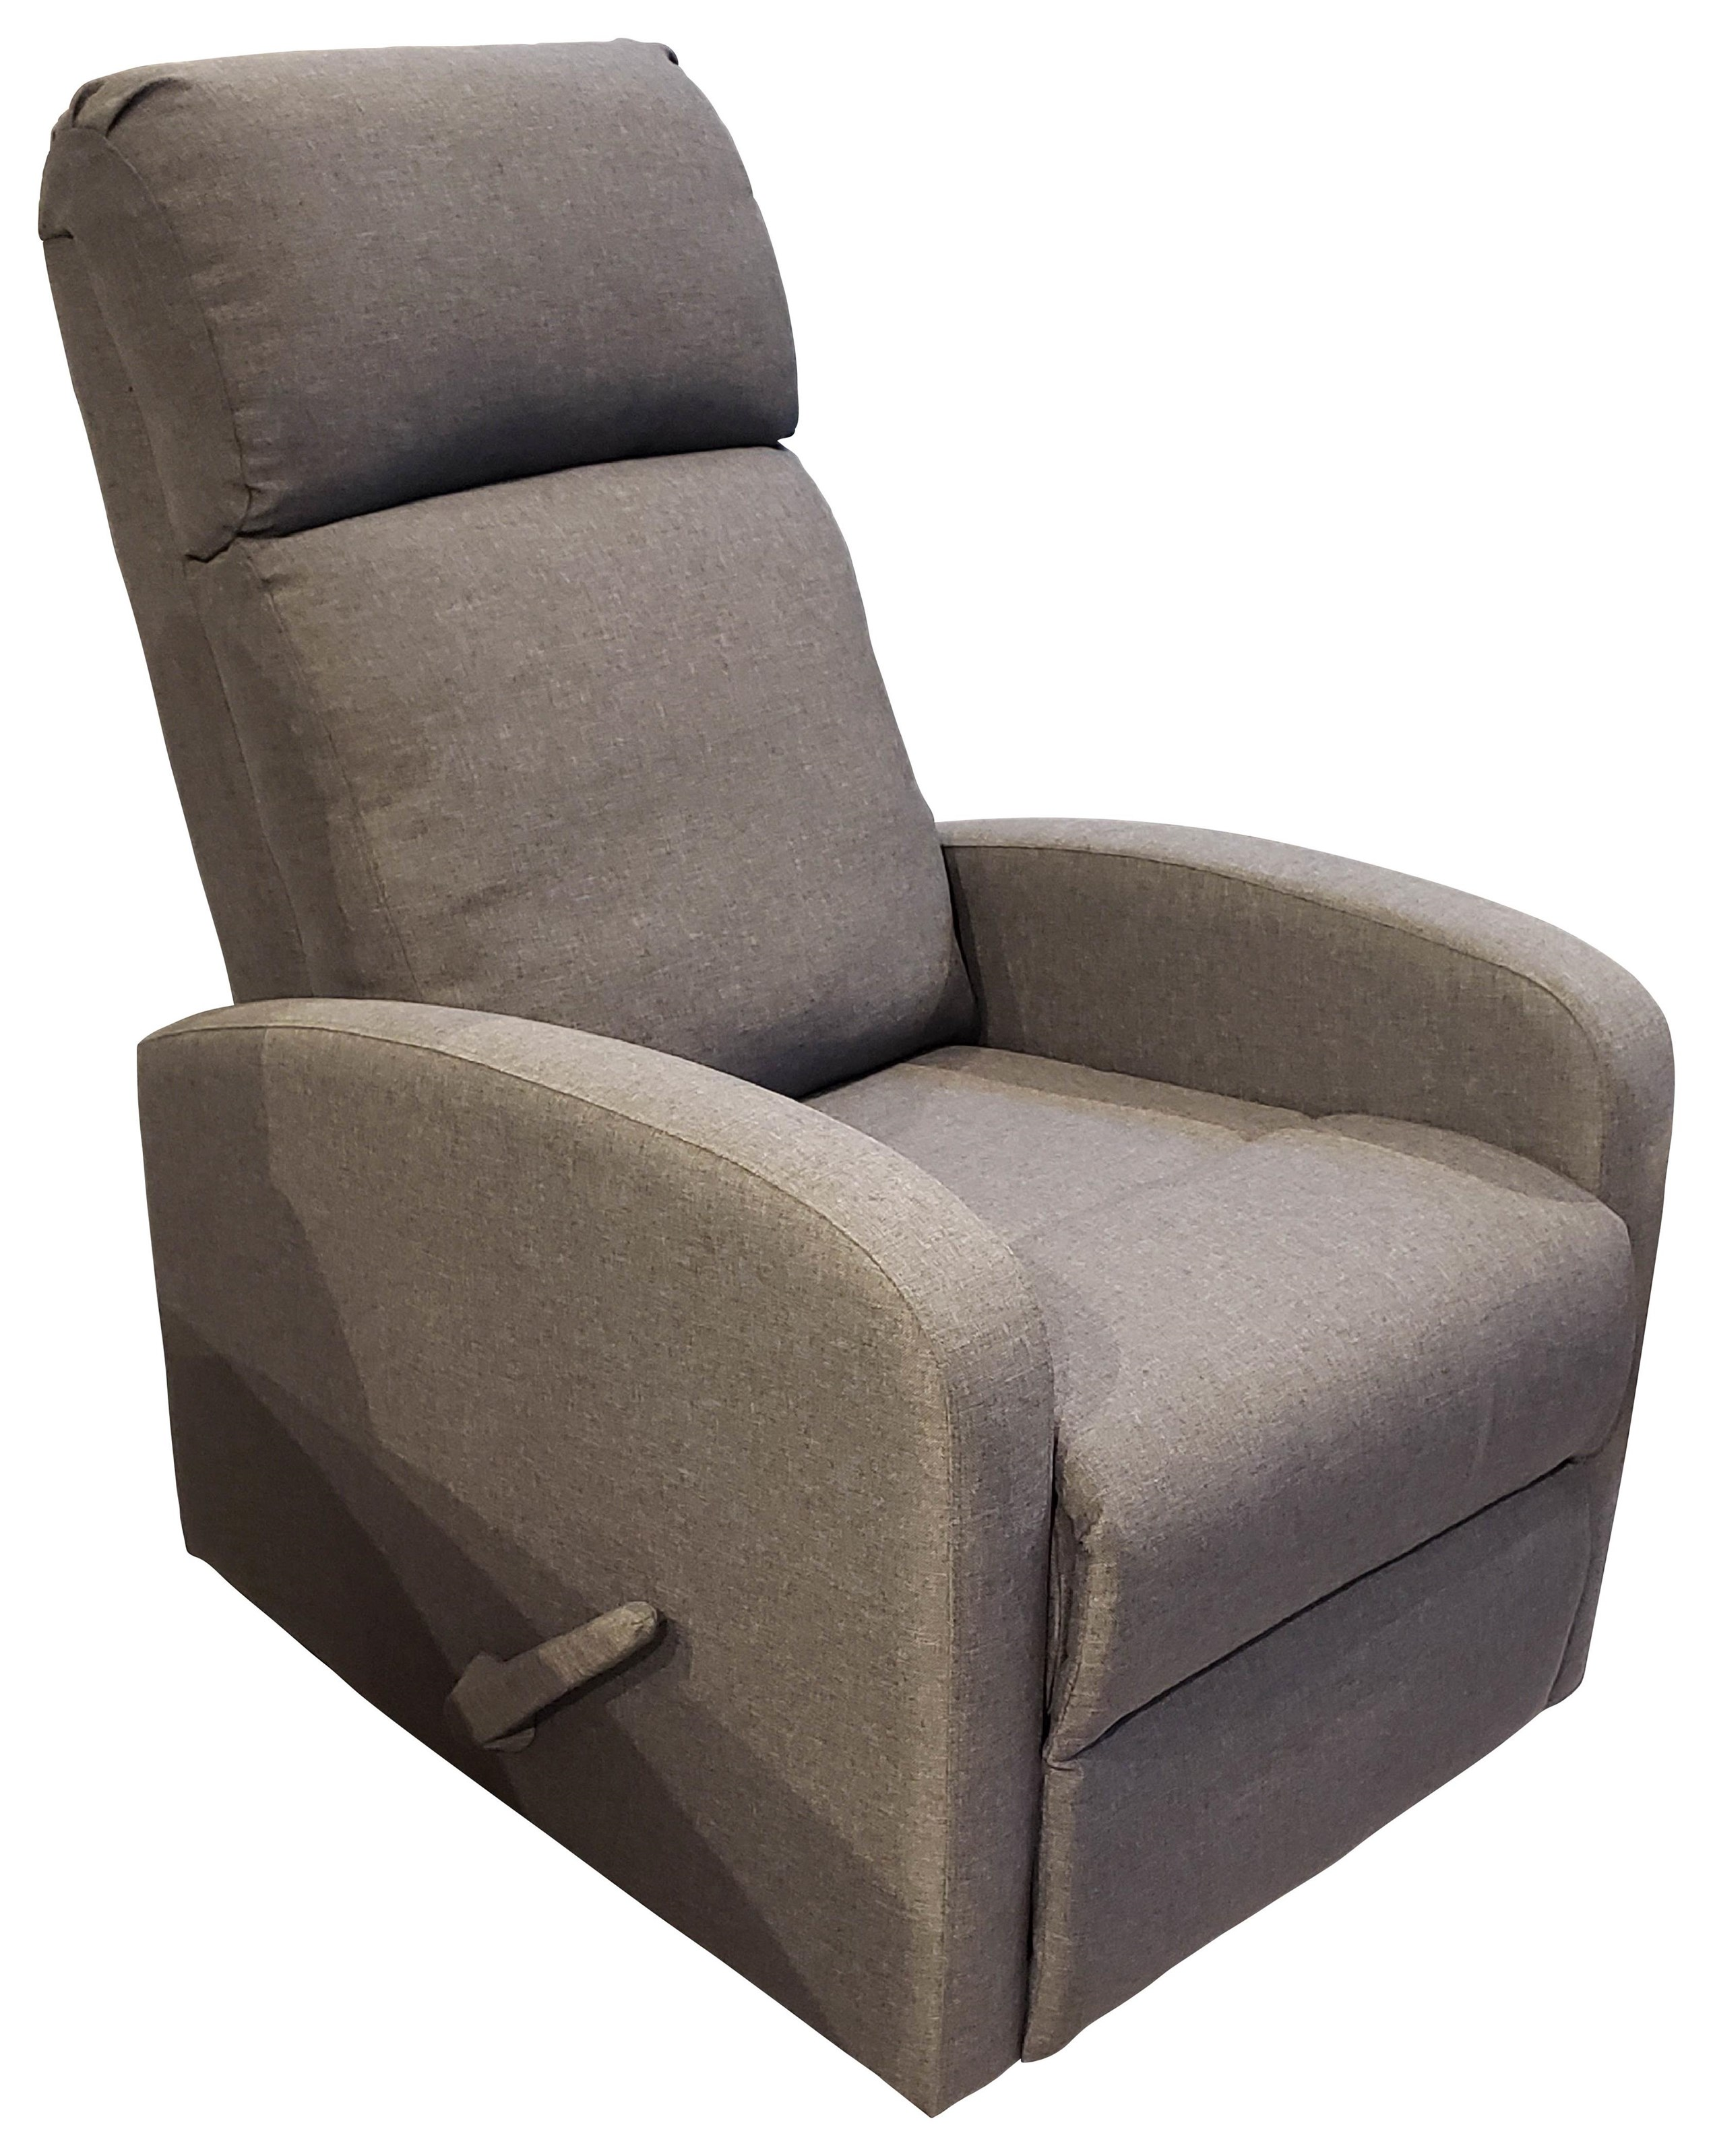 83301 Manual Recliner at Bennett's Furniture and Mattresses